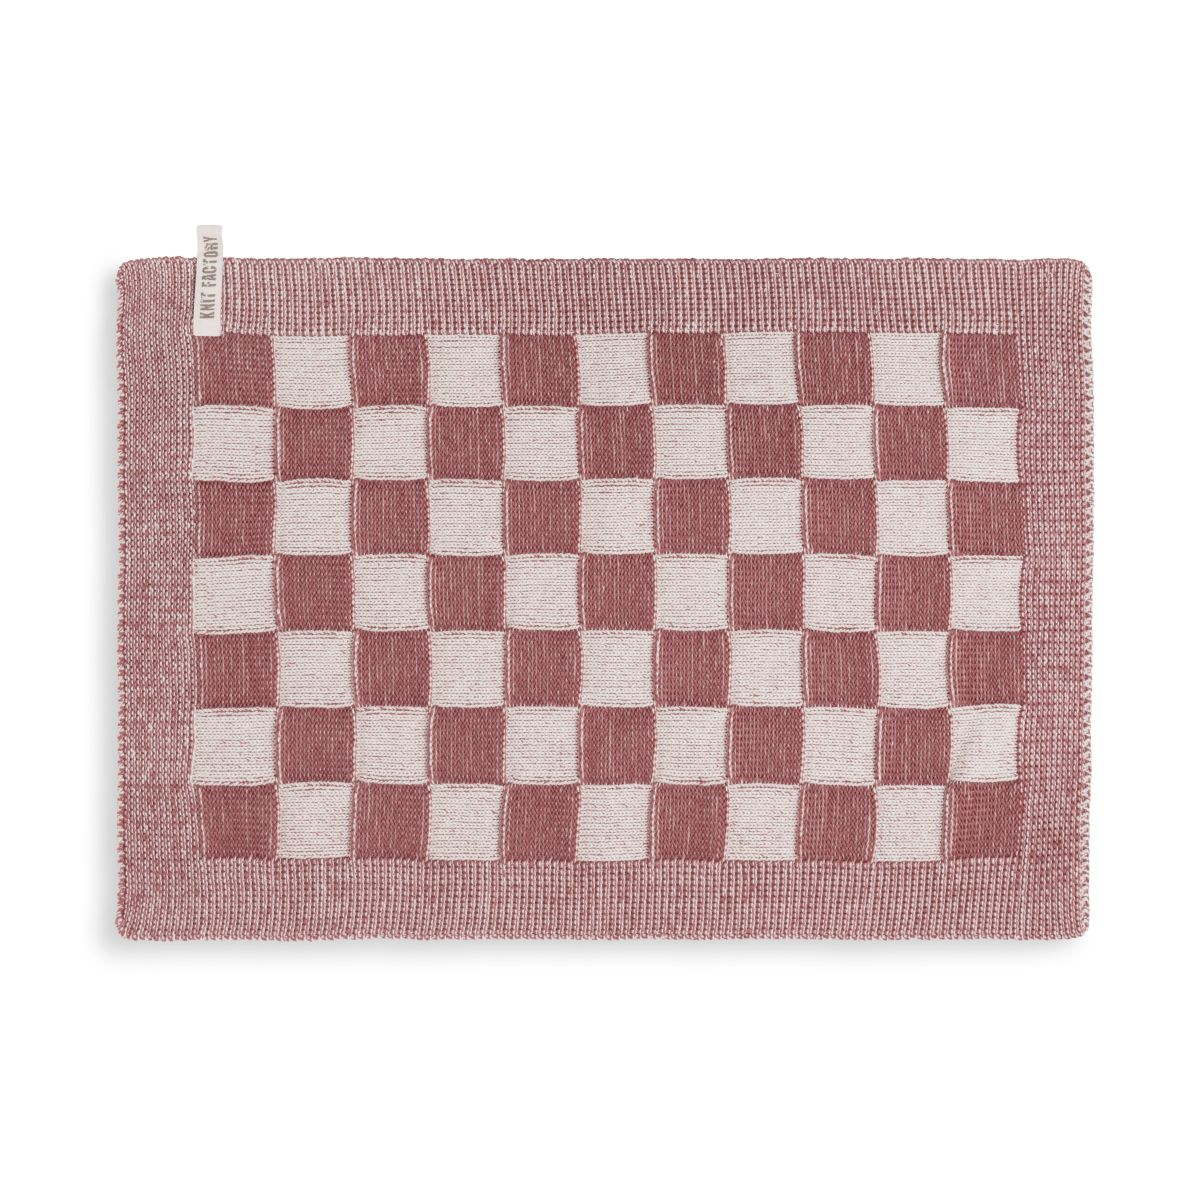 knit factory kf20120228850 placemat block ecru stone red 1